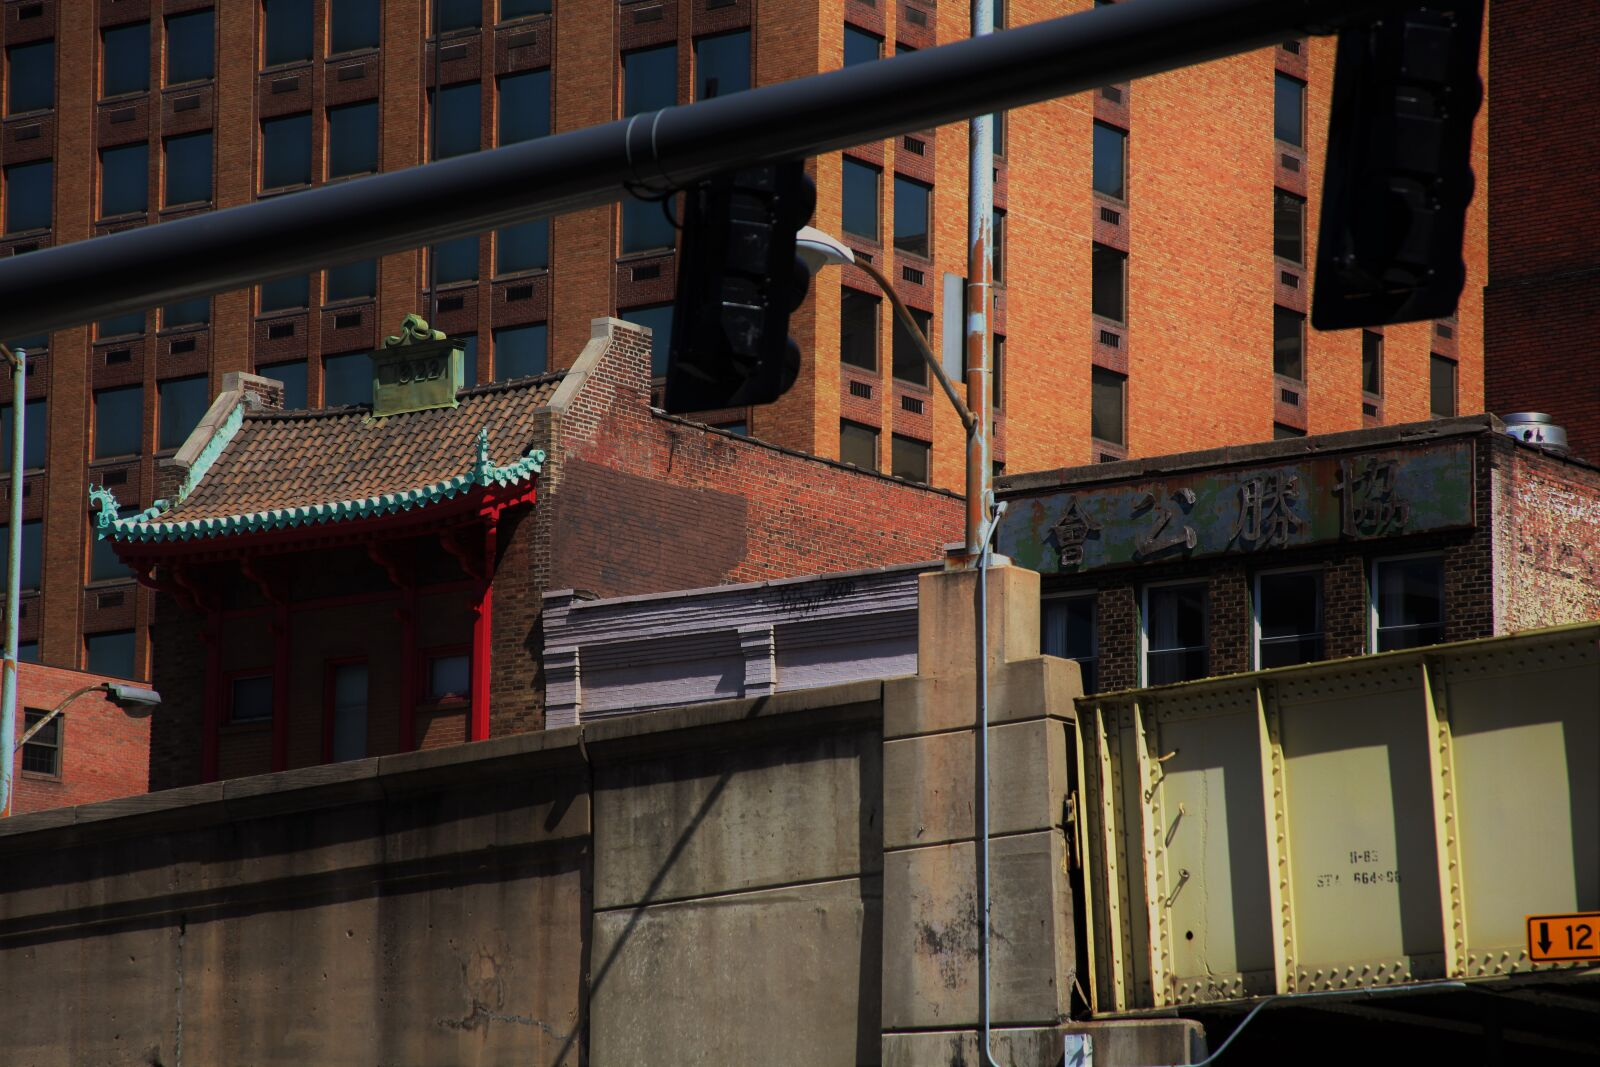 chinatown, city, downtown, Canon EOS 5D MARK II, Canon EF 28-135mm f/3.5-5.6 IS